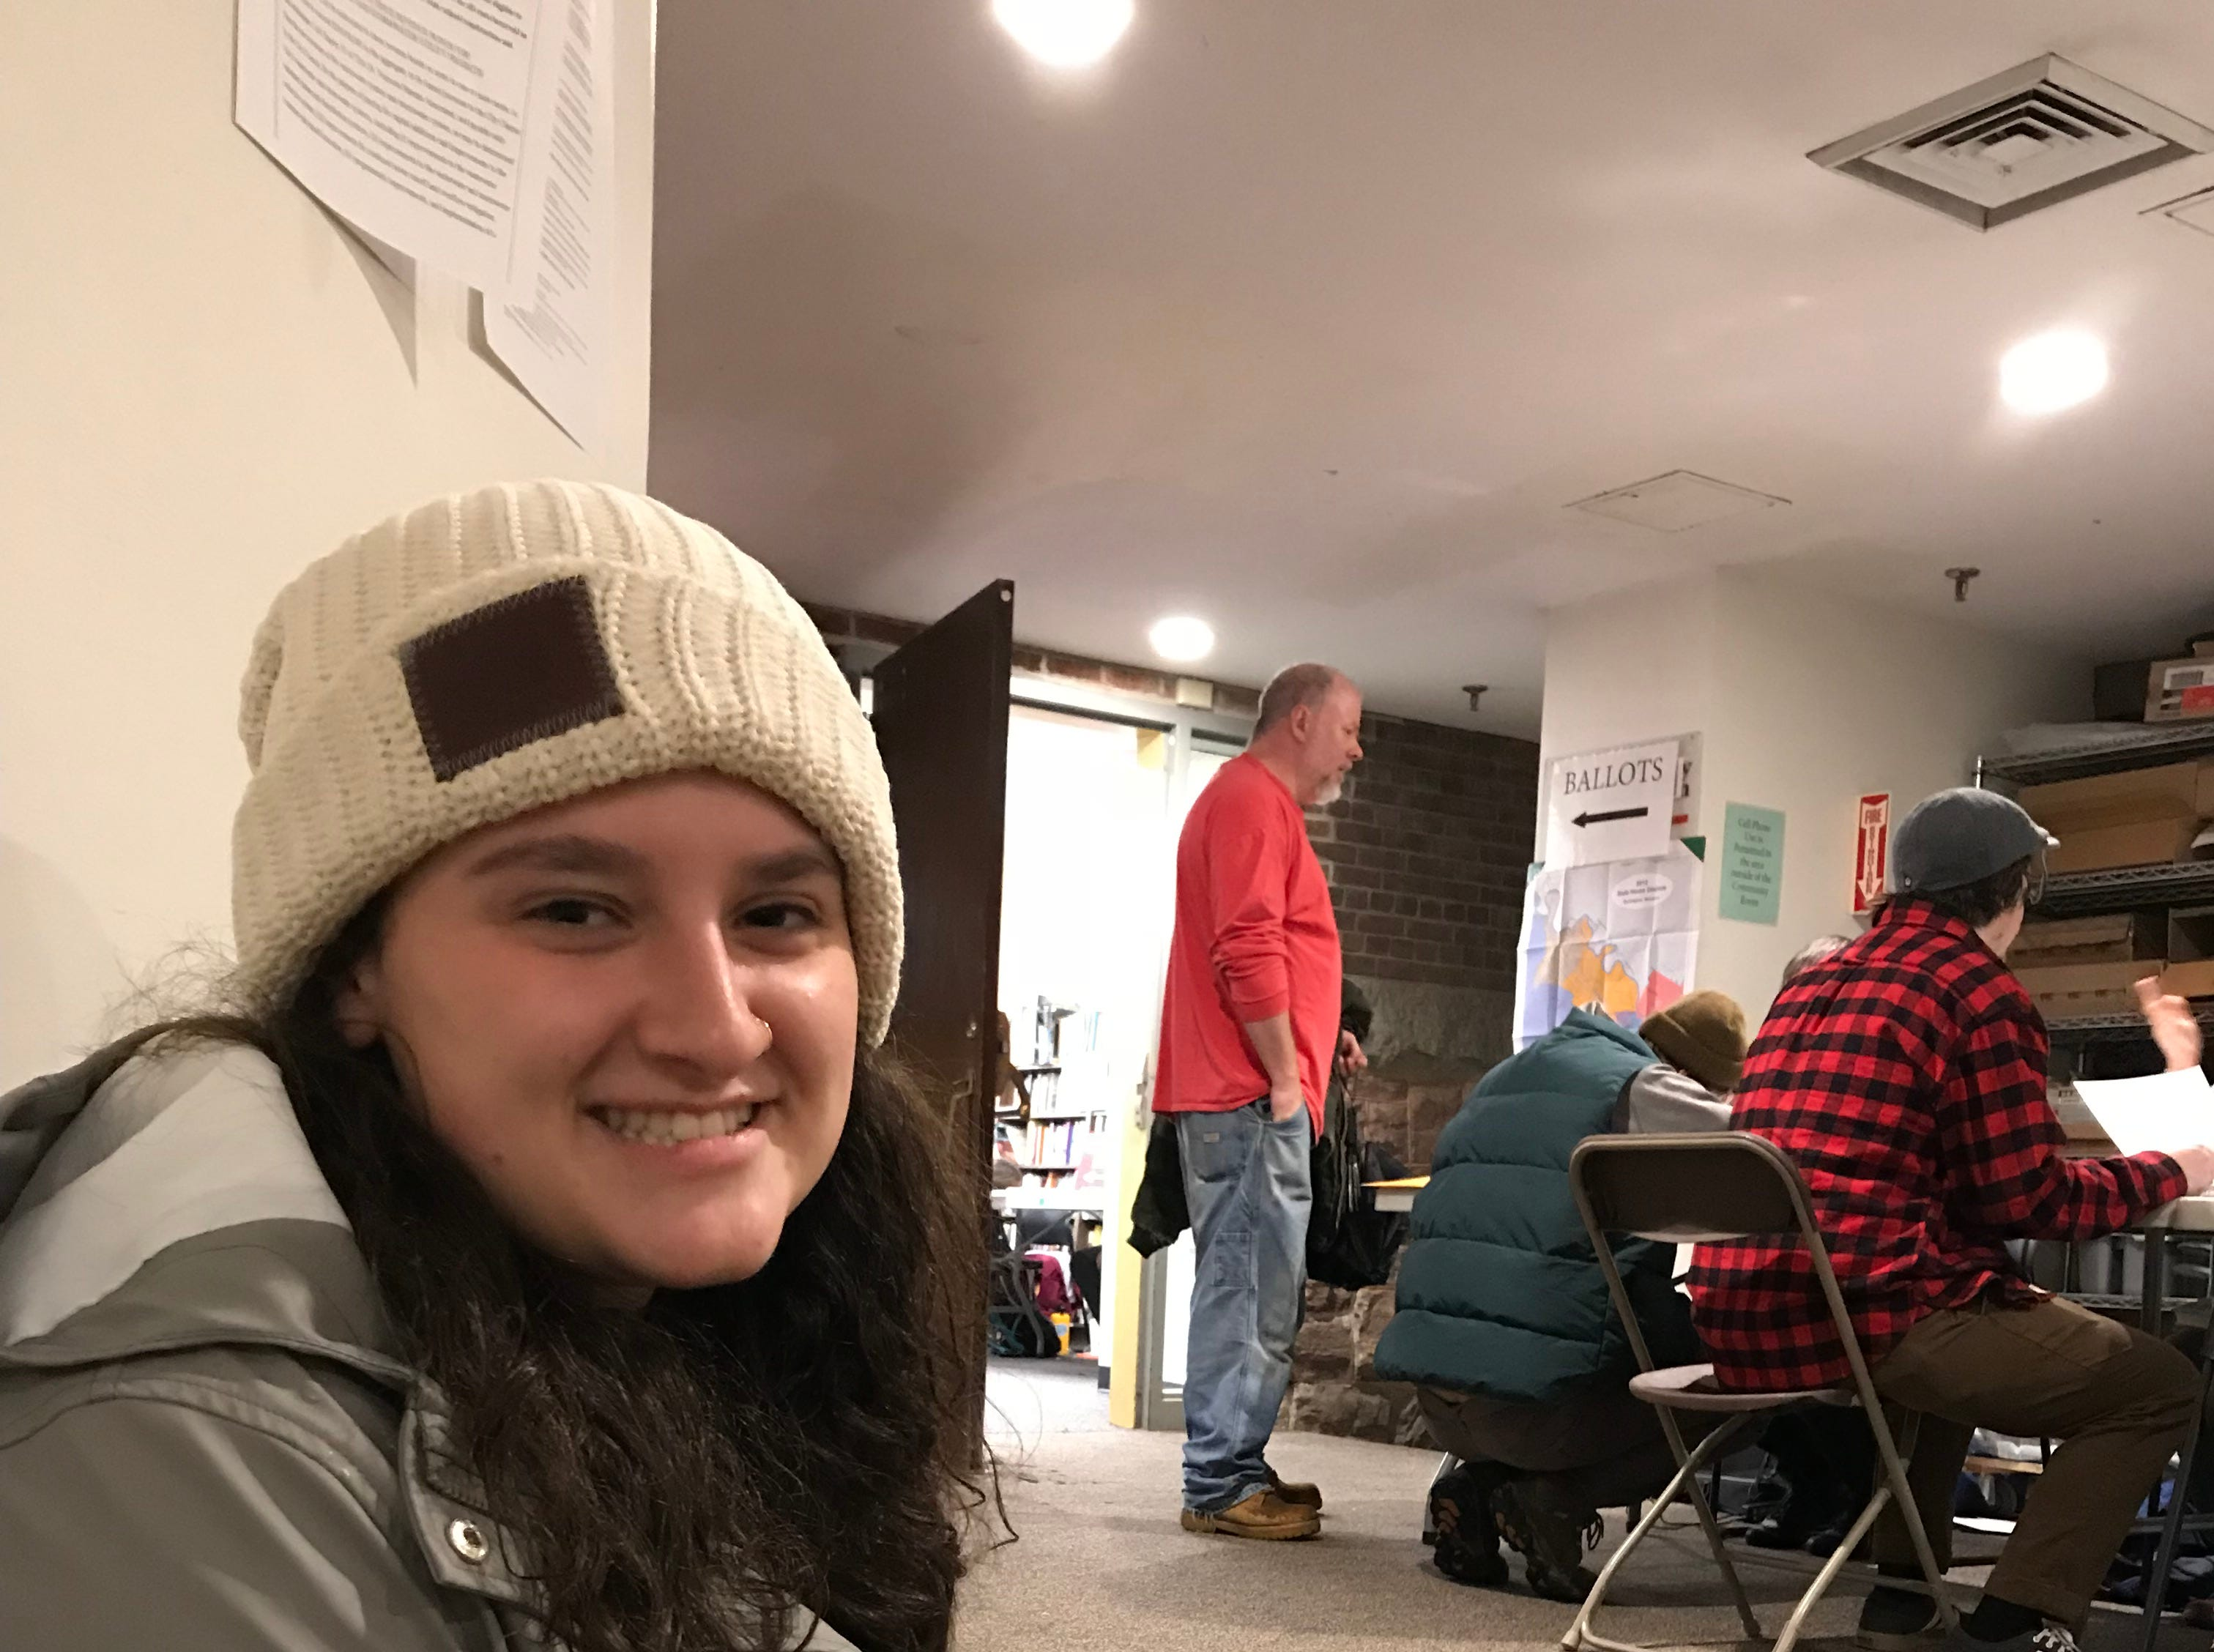 University of Vermont student Olivia Pietragallo seen before she voted at Burlington's Ward 8 polling station at the Fletcher Free Library on Tuesday, Nov. 6, 2018.